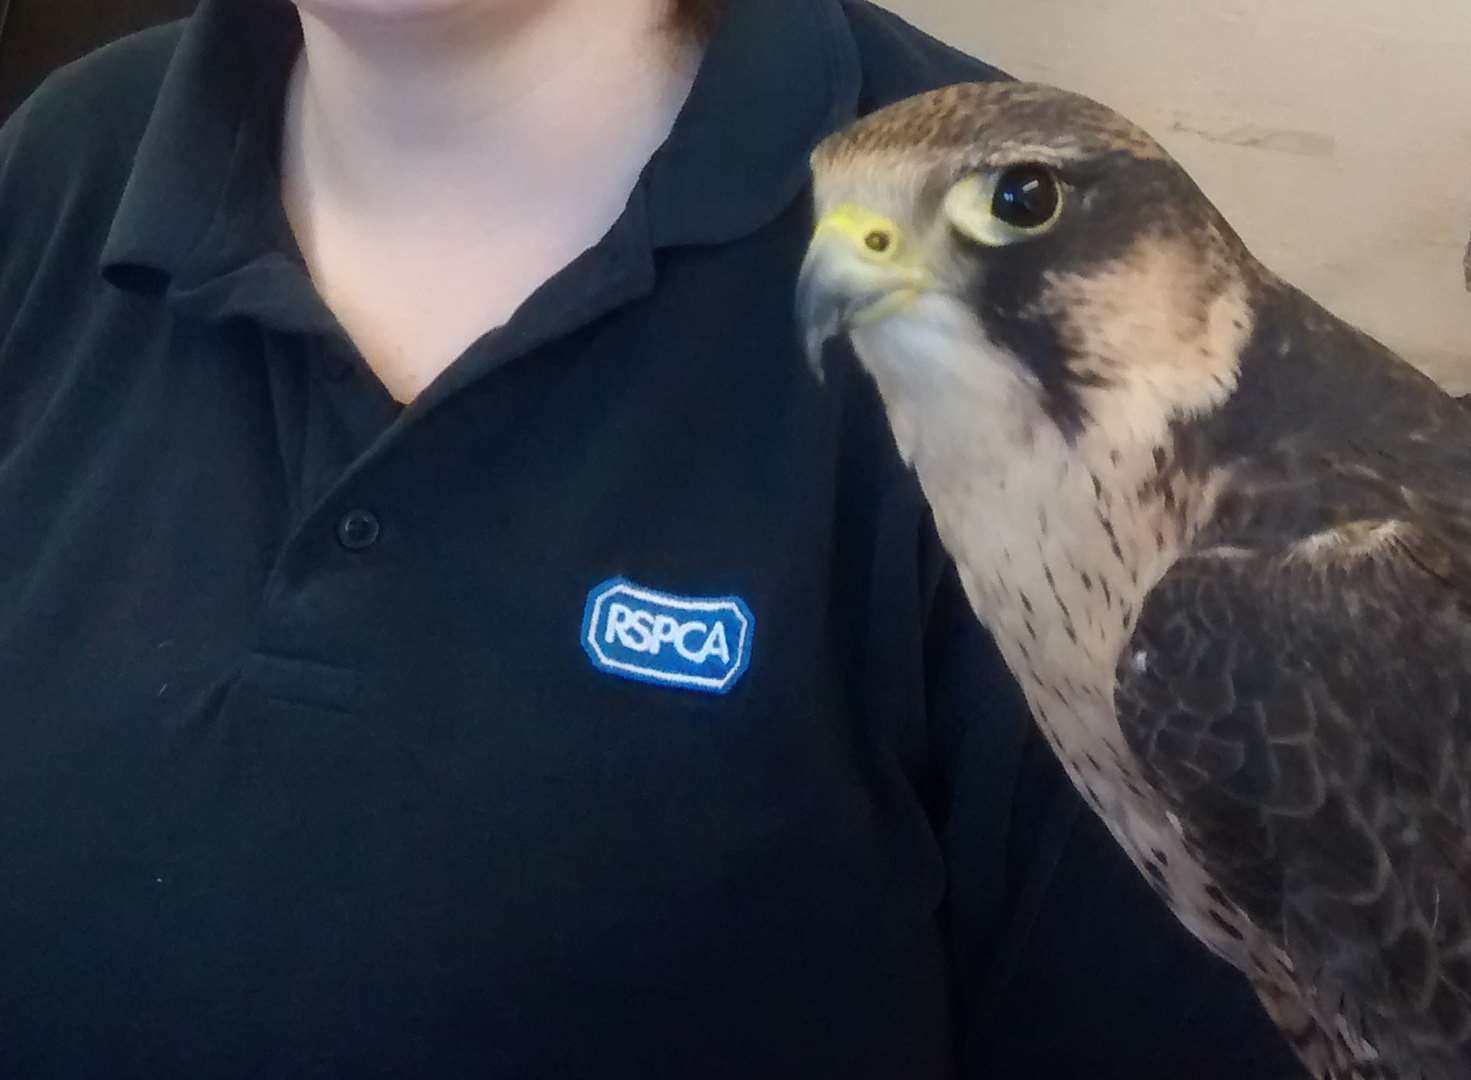 Falcon returned after being cut free by trespasser